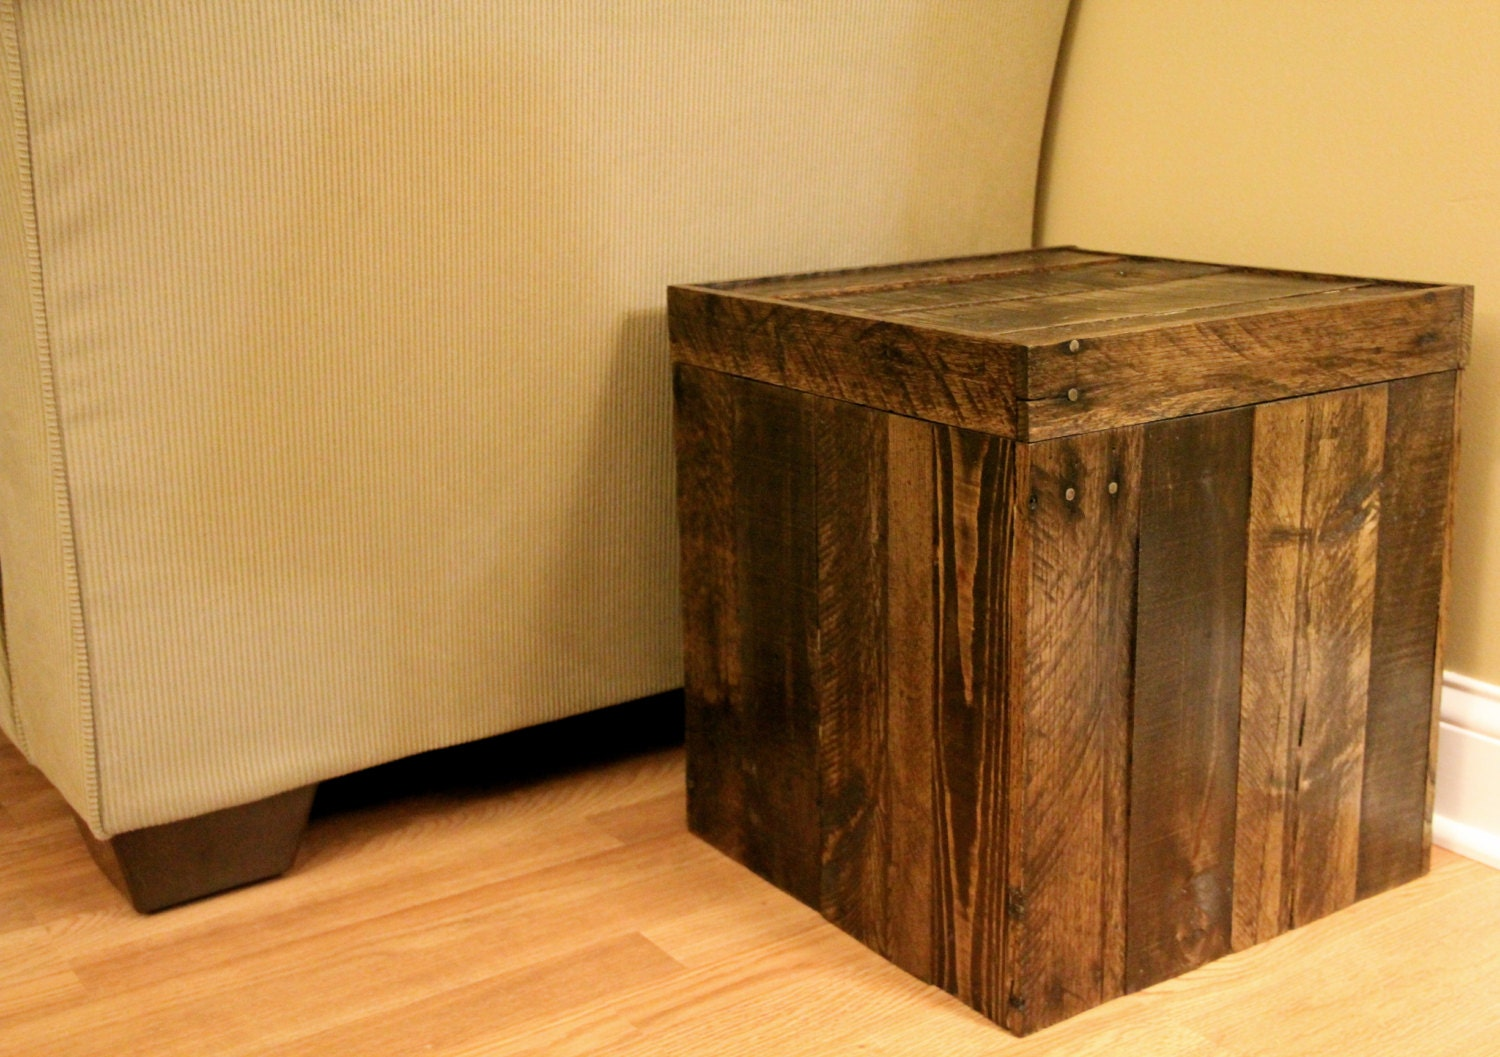 Wooden Ottoman With Storage Designs ~ Reclaimed pallet wood furniture storage cubed ottoman